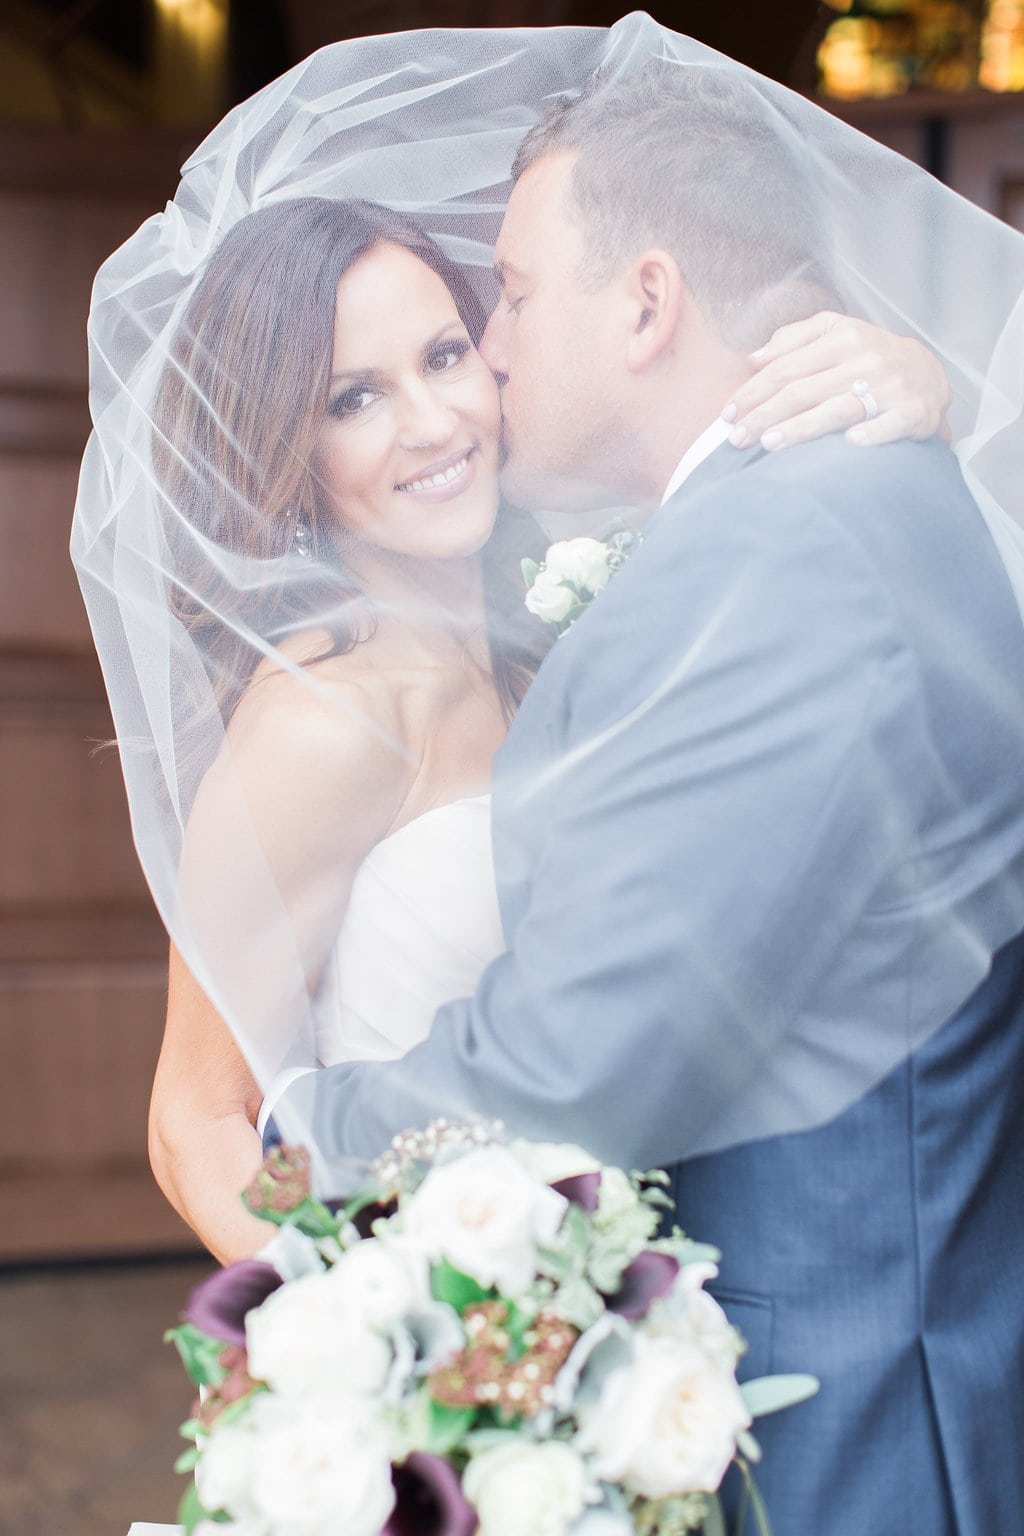 Photo of the groom kissing the bride's cheek under her veil outside the church - J Verno Studios Winter Wedding